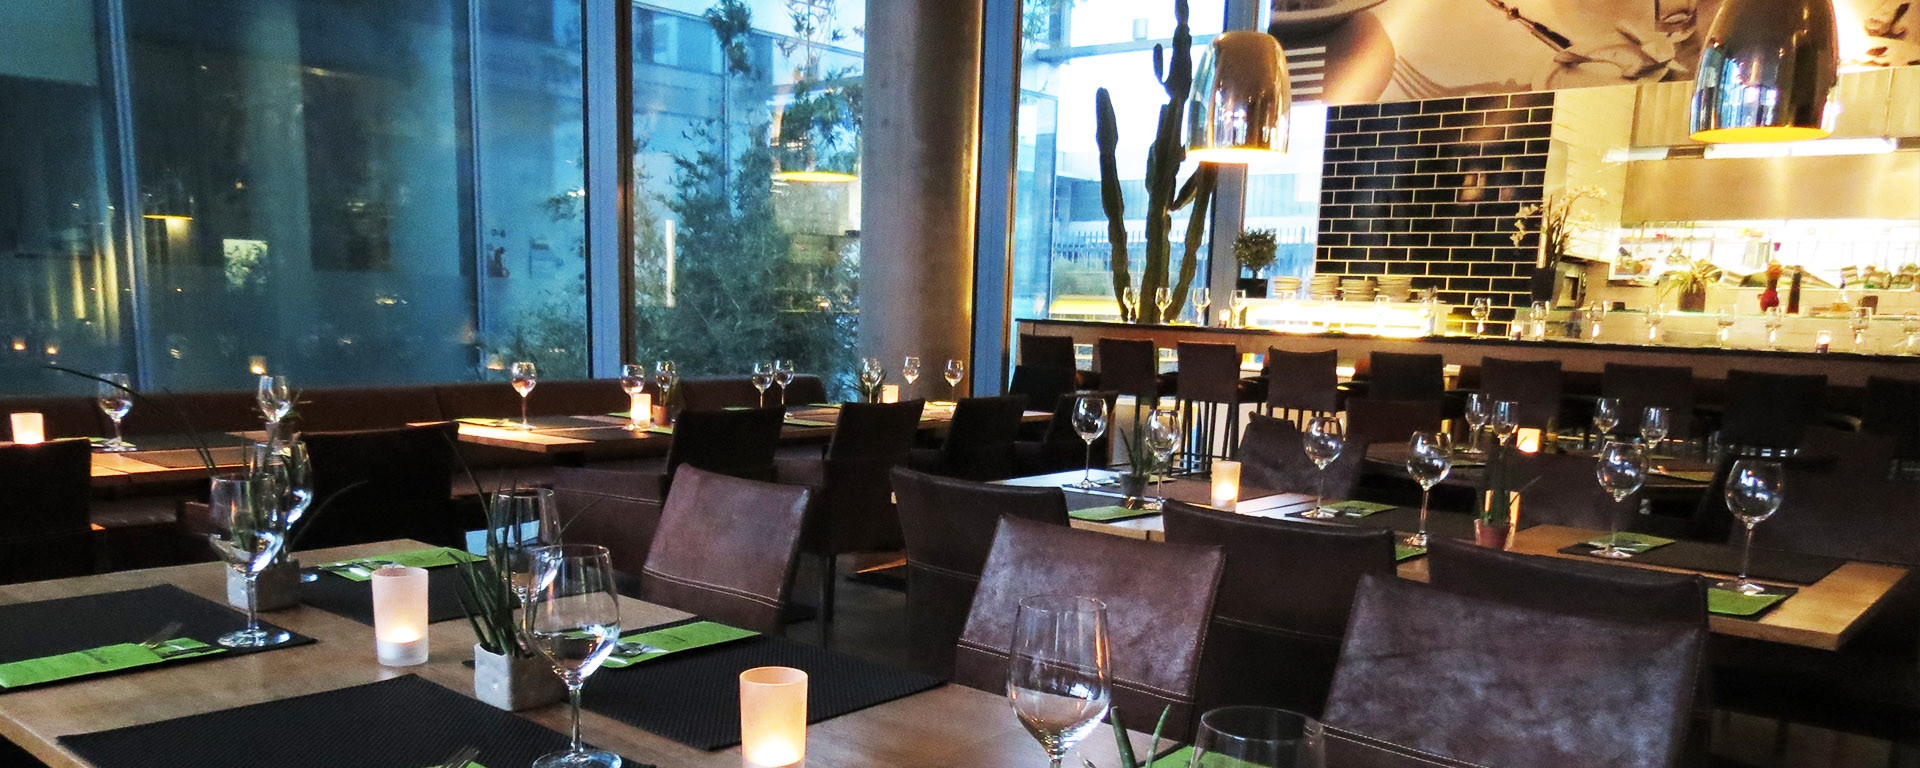 Seile´s Restaurant im Hegau-Tower in Singen